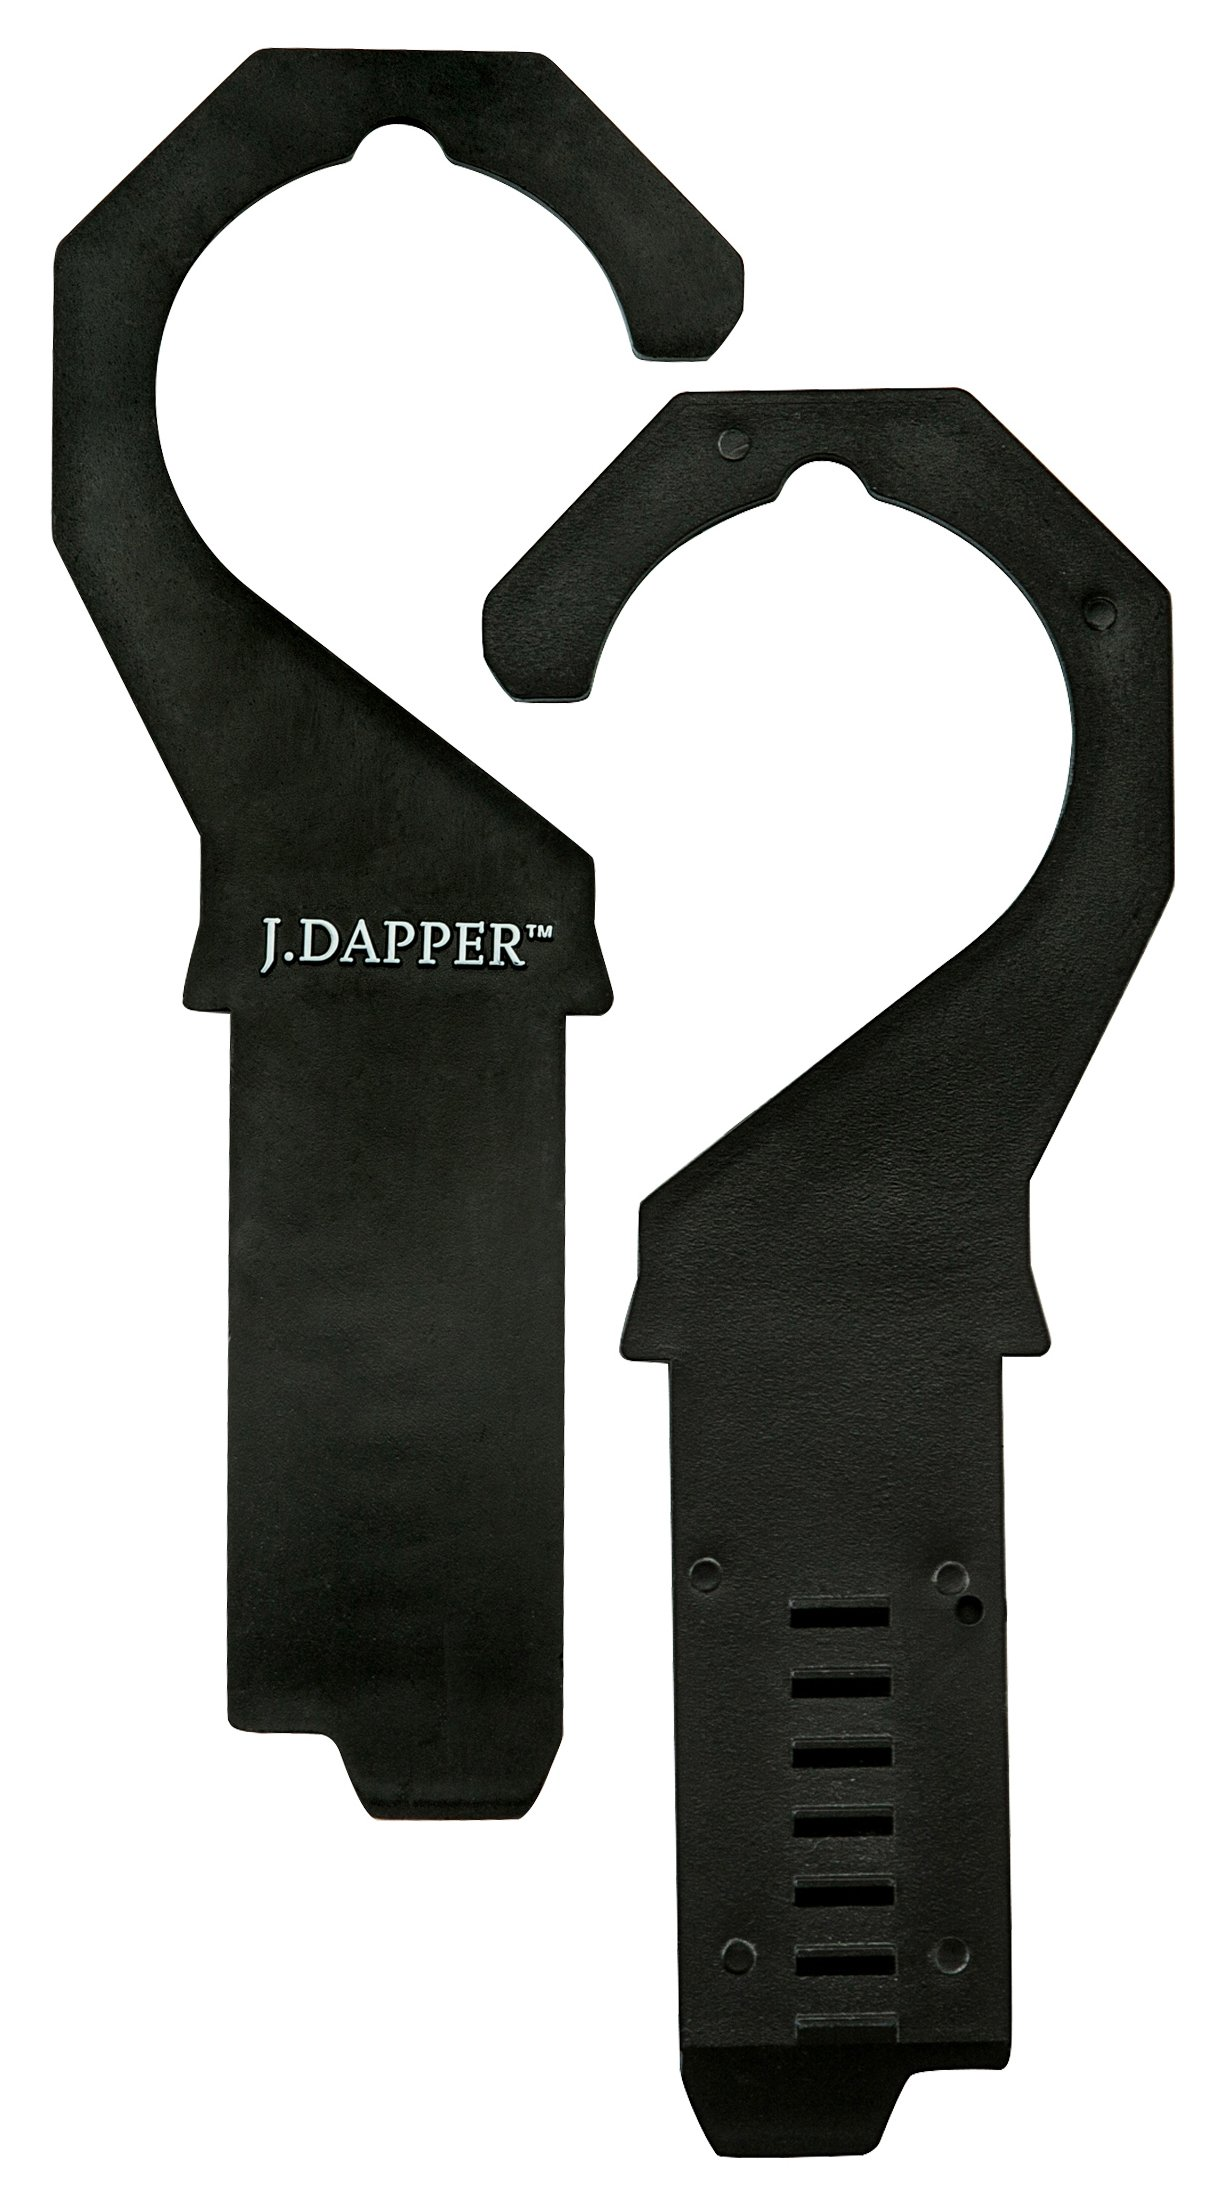 Men's Black Ratchet Belt - Black and Silver Open Style - by J. Dapper by J. Dapper (Image #7)